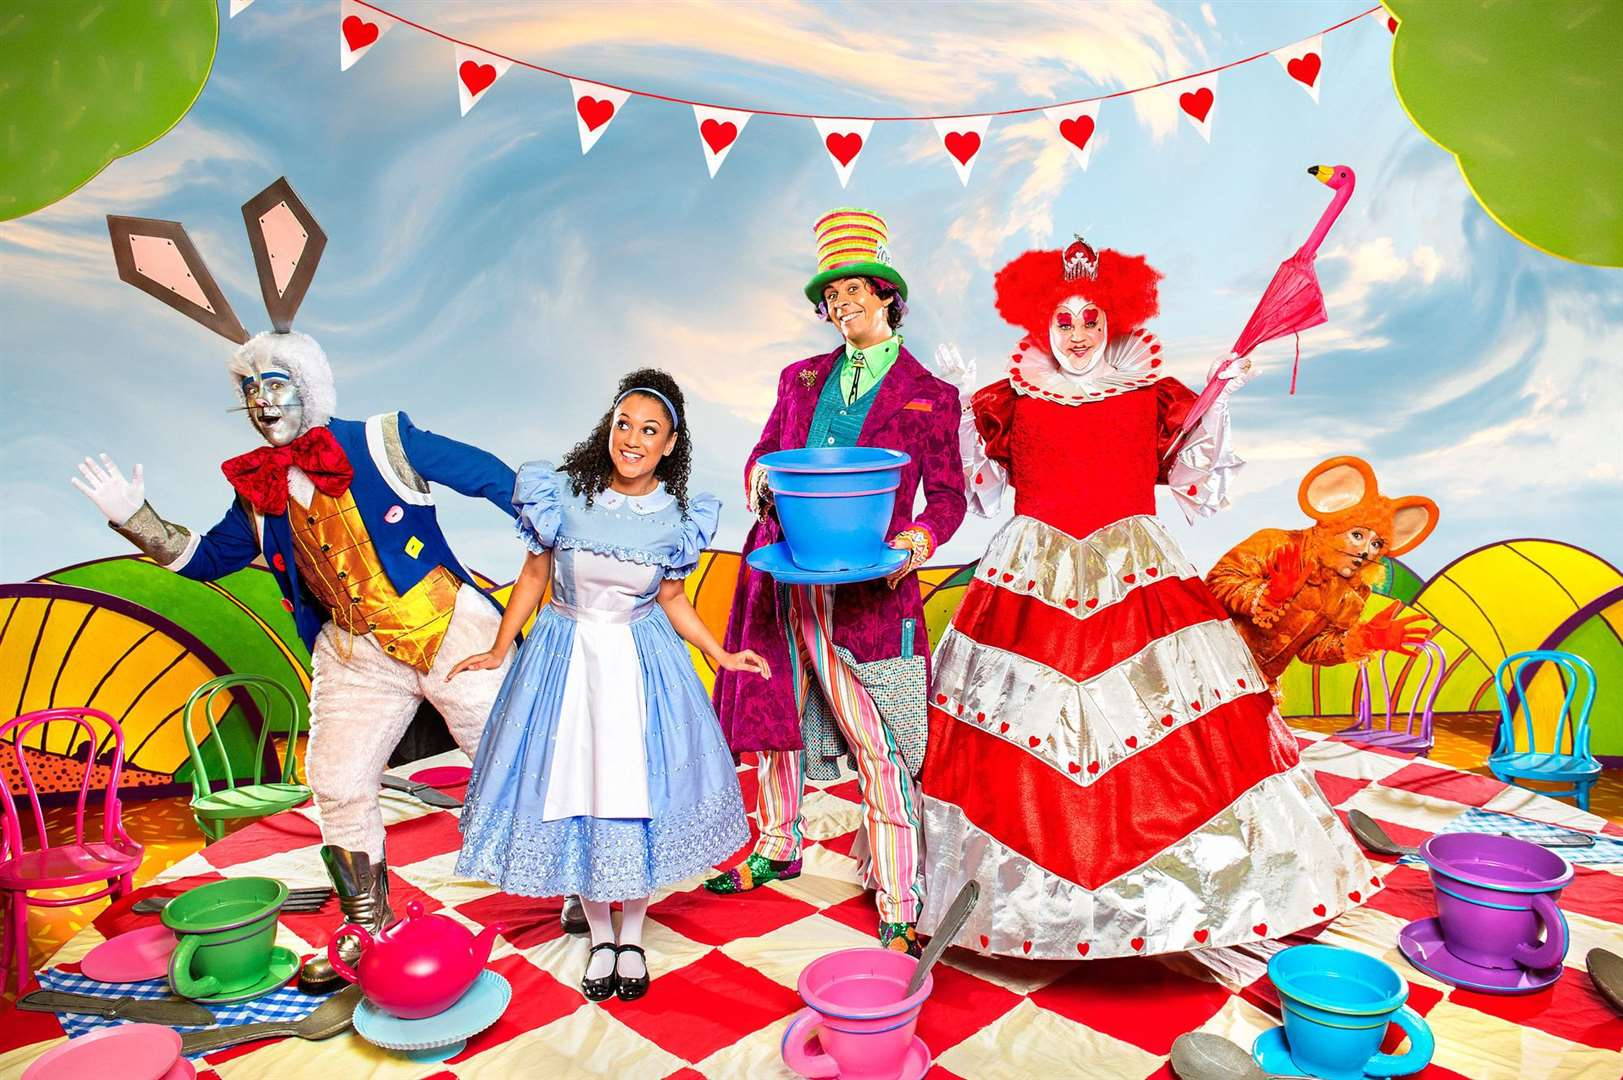 2015 saw a production of Alice in Wonderland